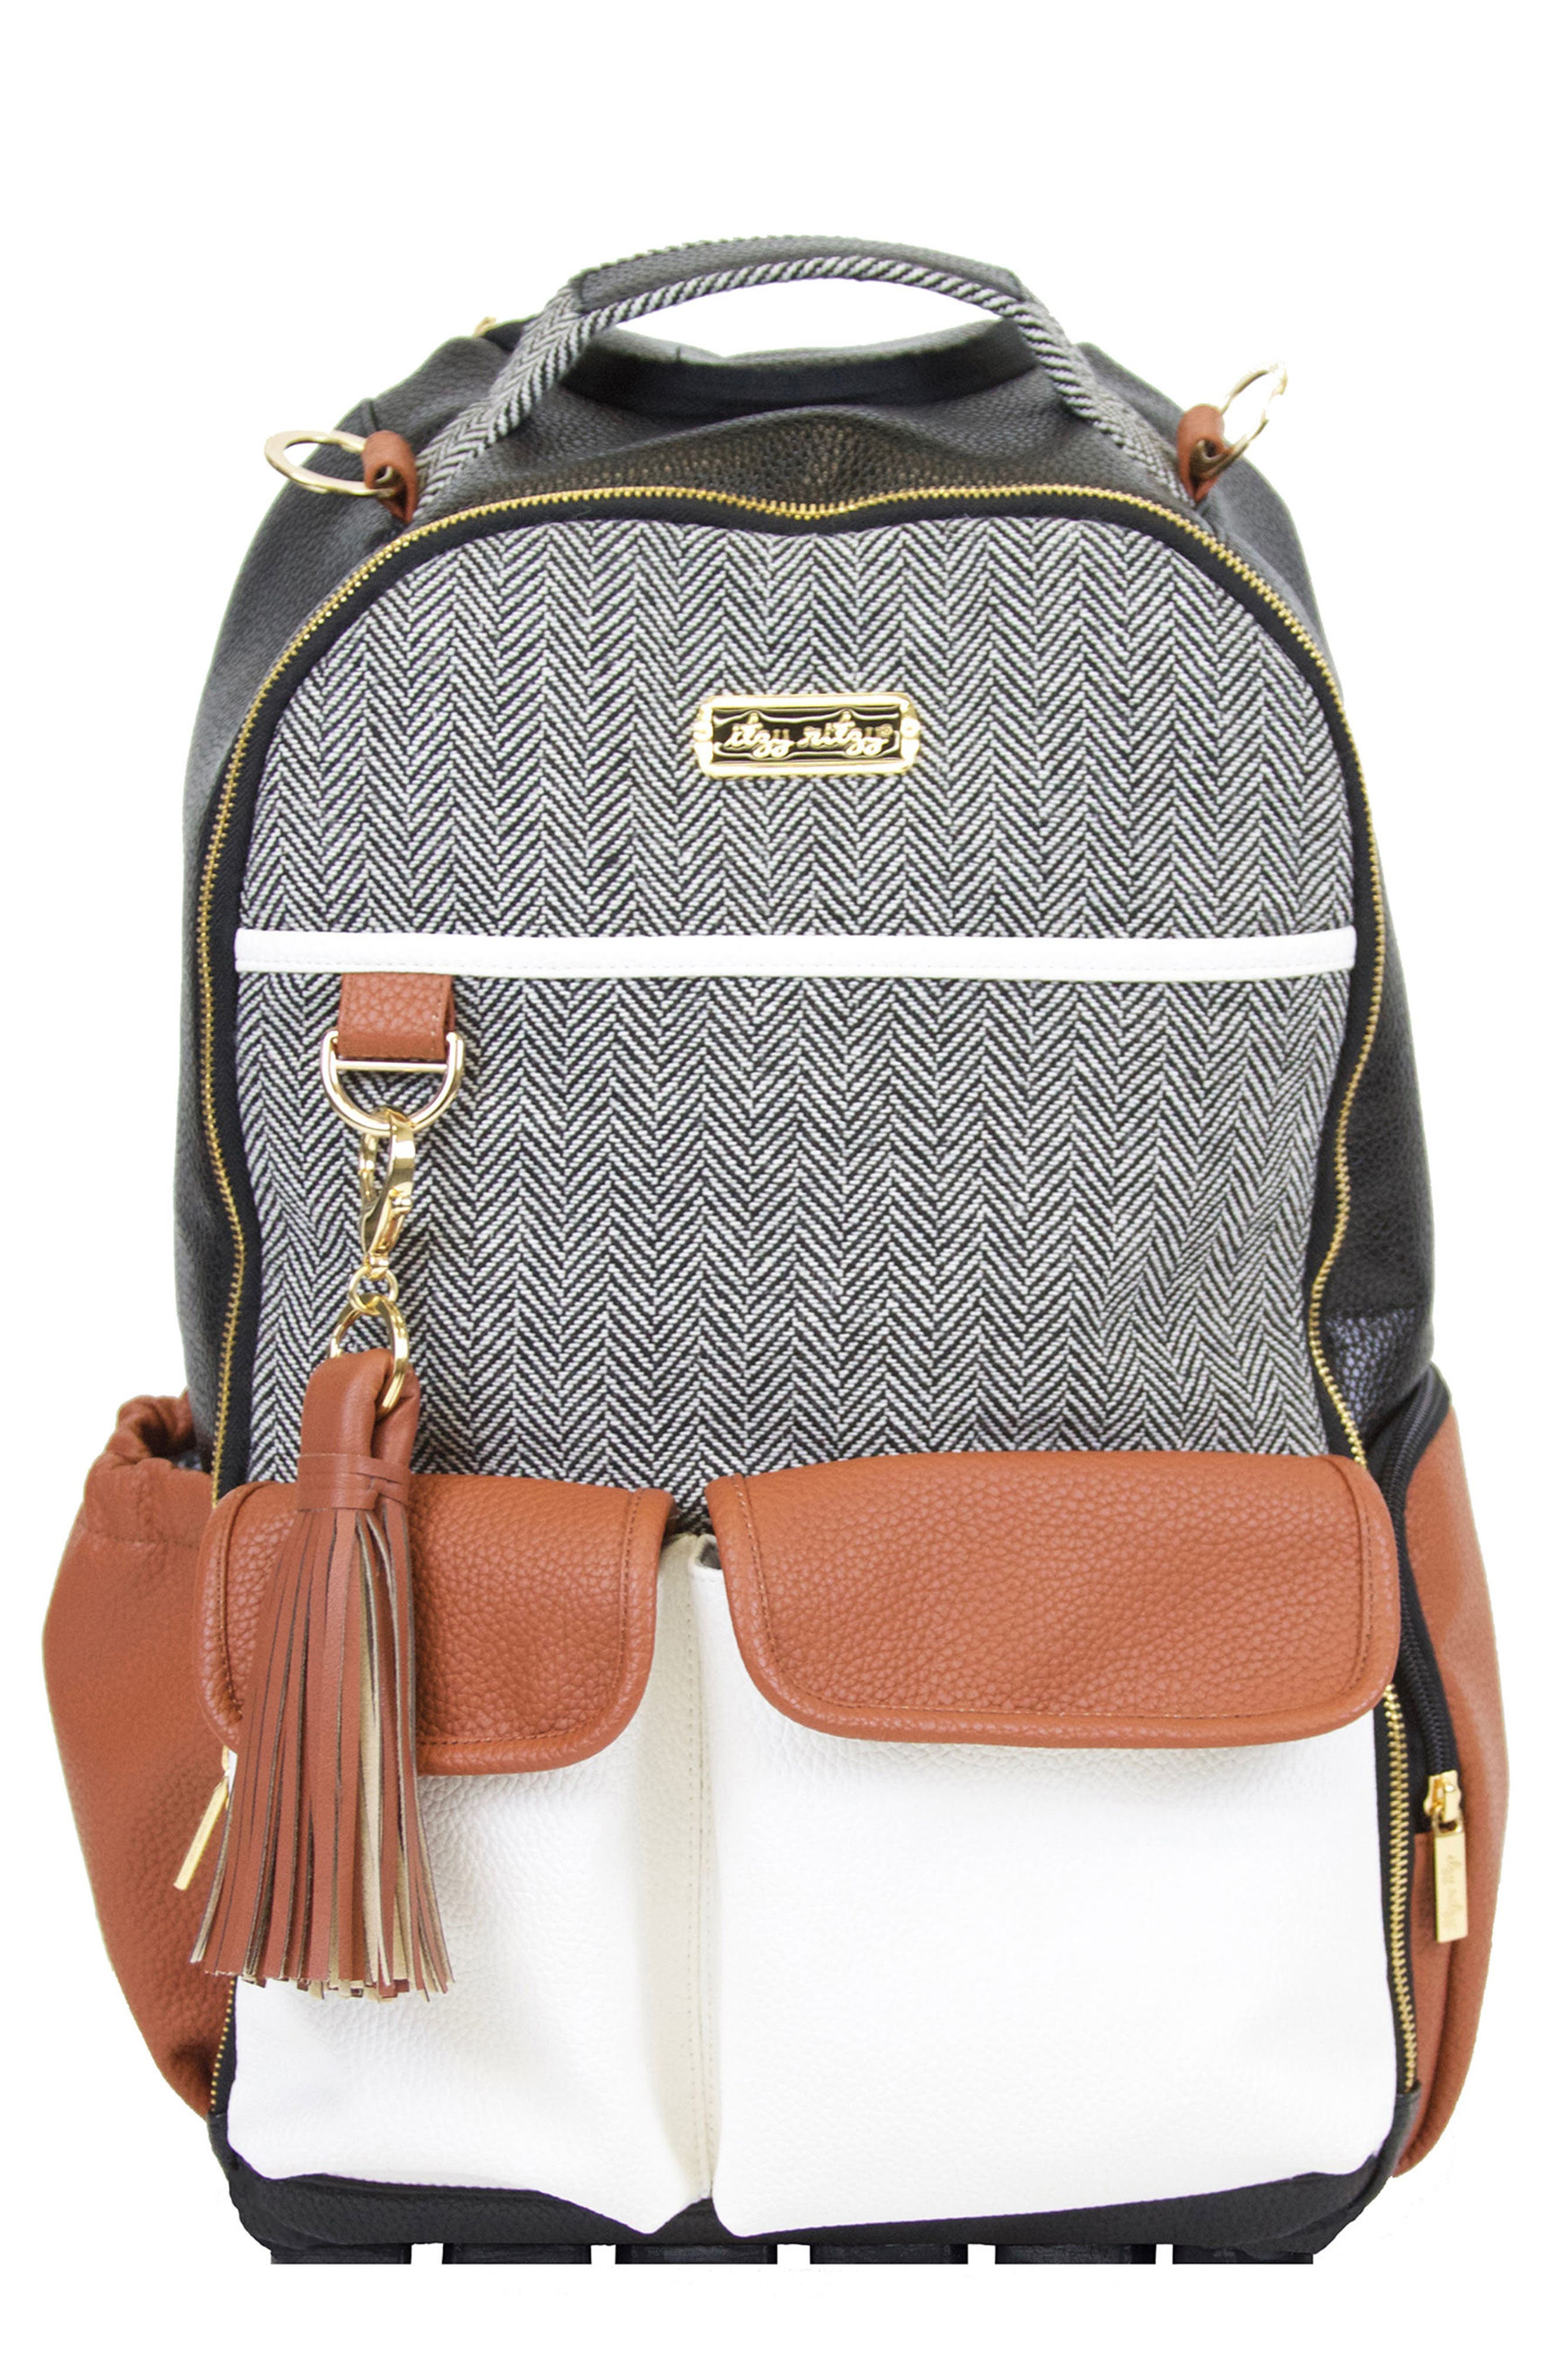 Itzy Ritzy Diaper Bag Backpack